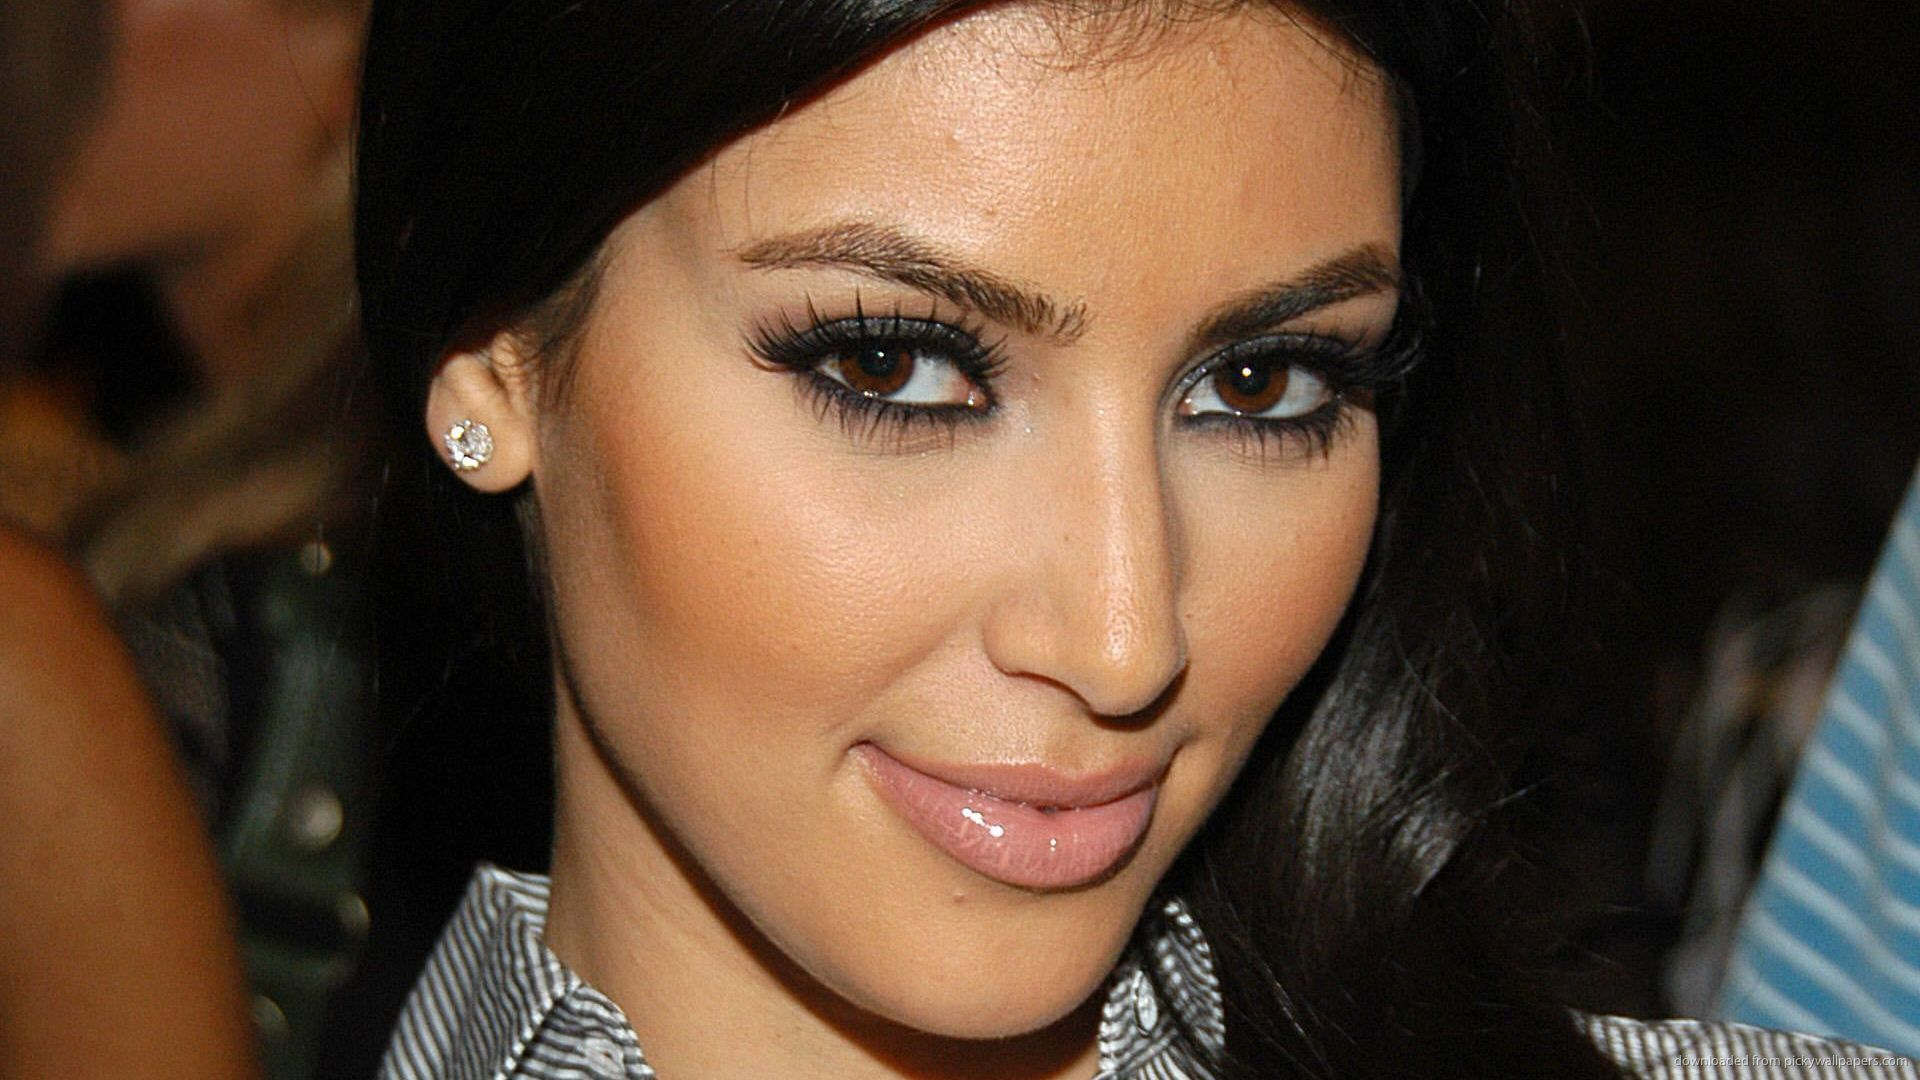 Kim Kardashian Smiles Wallpaper For iPhone 4 1920x1080